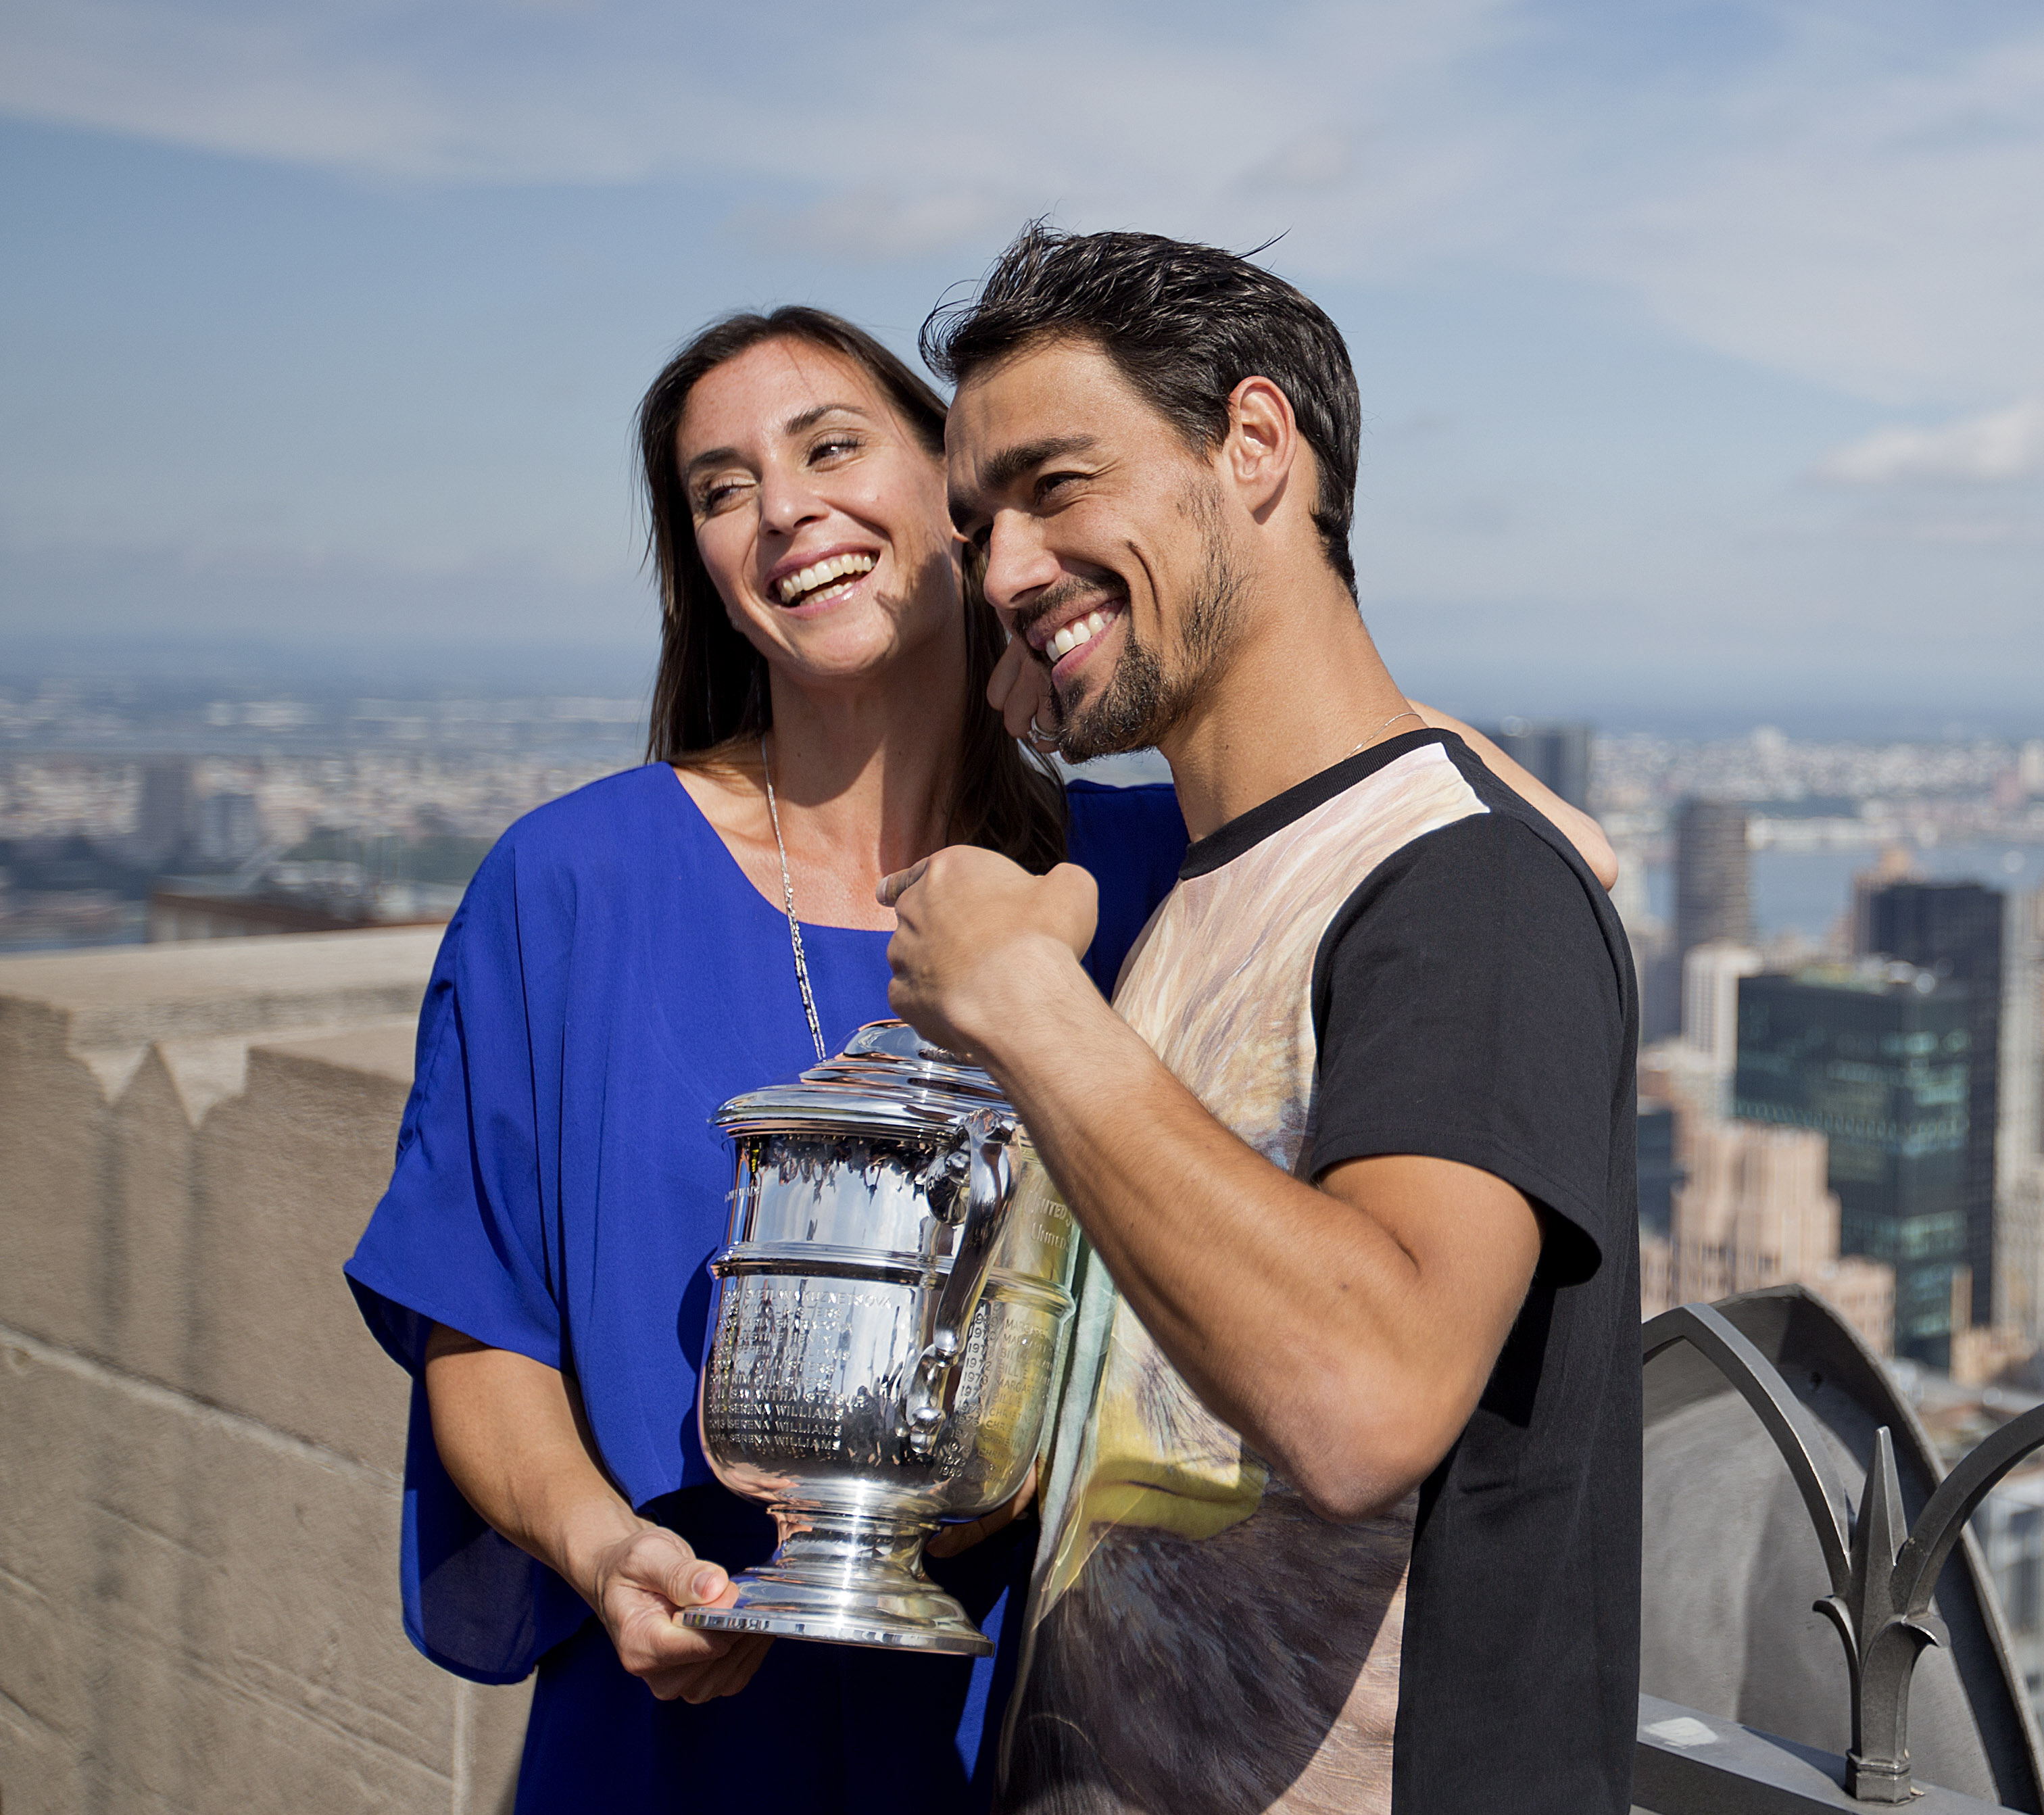 FILe - In this Sept. 13, 2015, file photo, Flavia Pennetta, of Italy, left, poses with her then-fiance and fellow tennis player Fabio Fognini with the U.S. Open tennis women's singles championship trophy during a visit to the Top of the Rock Observation D